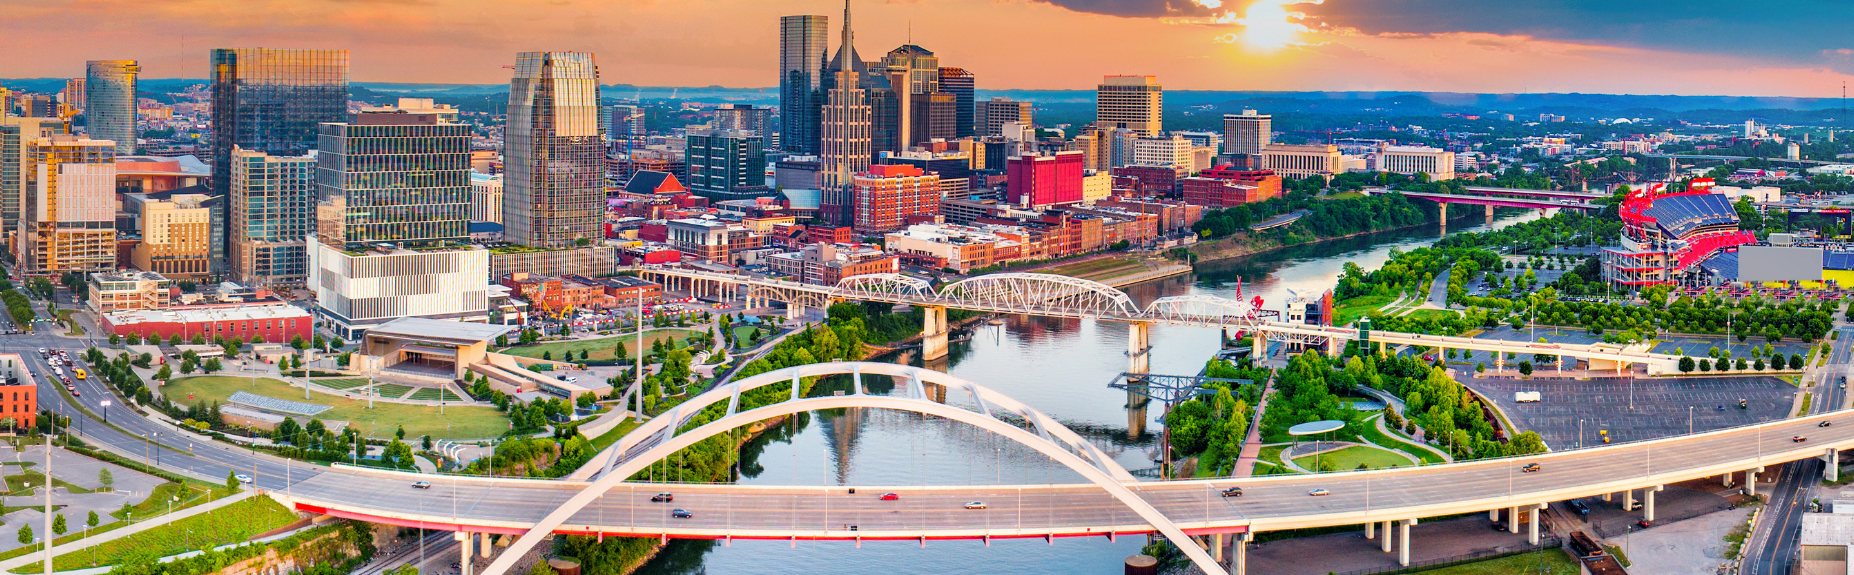 best Nashville river cruises